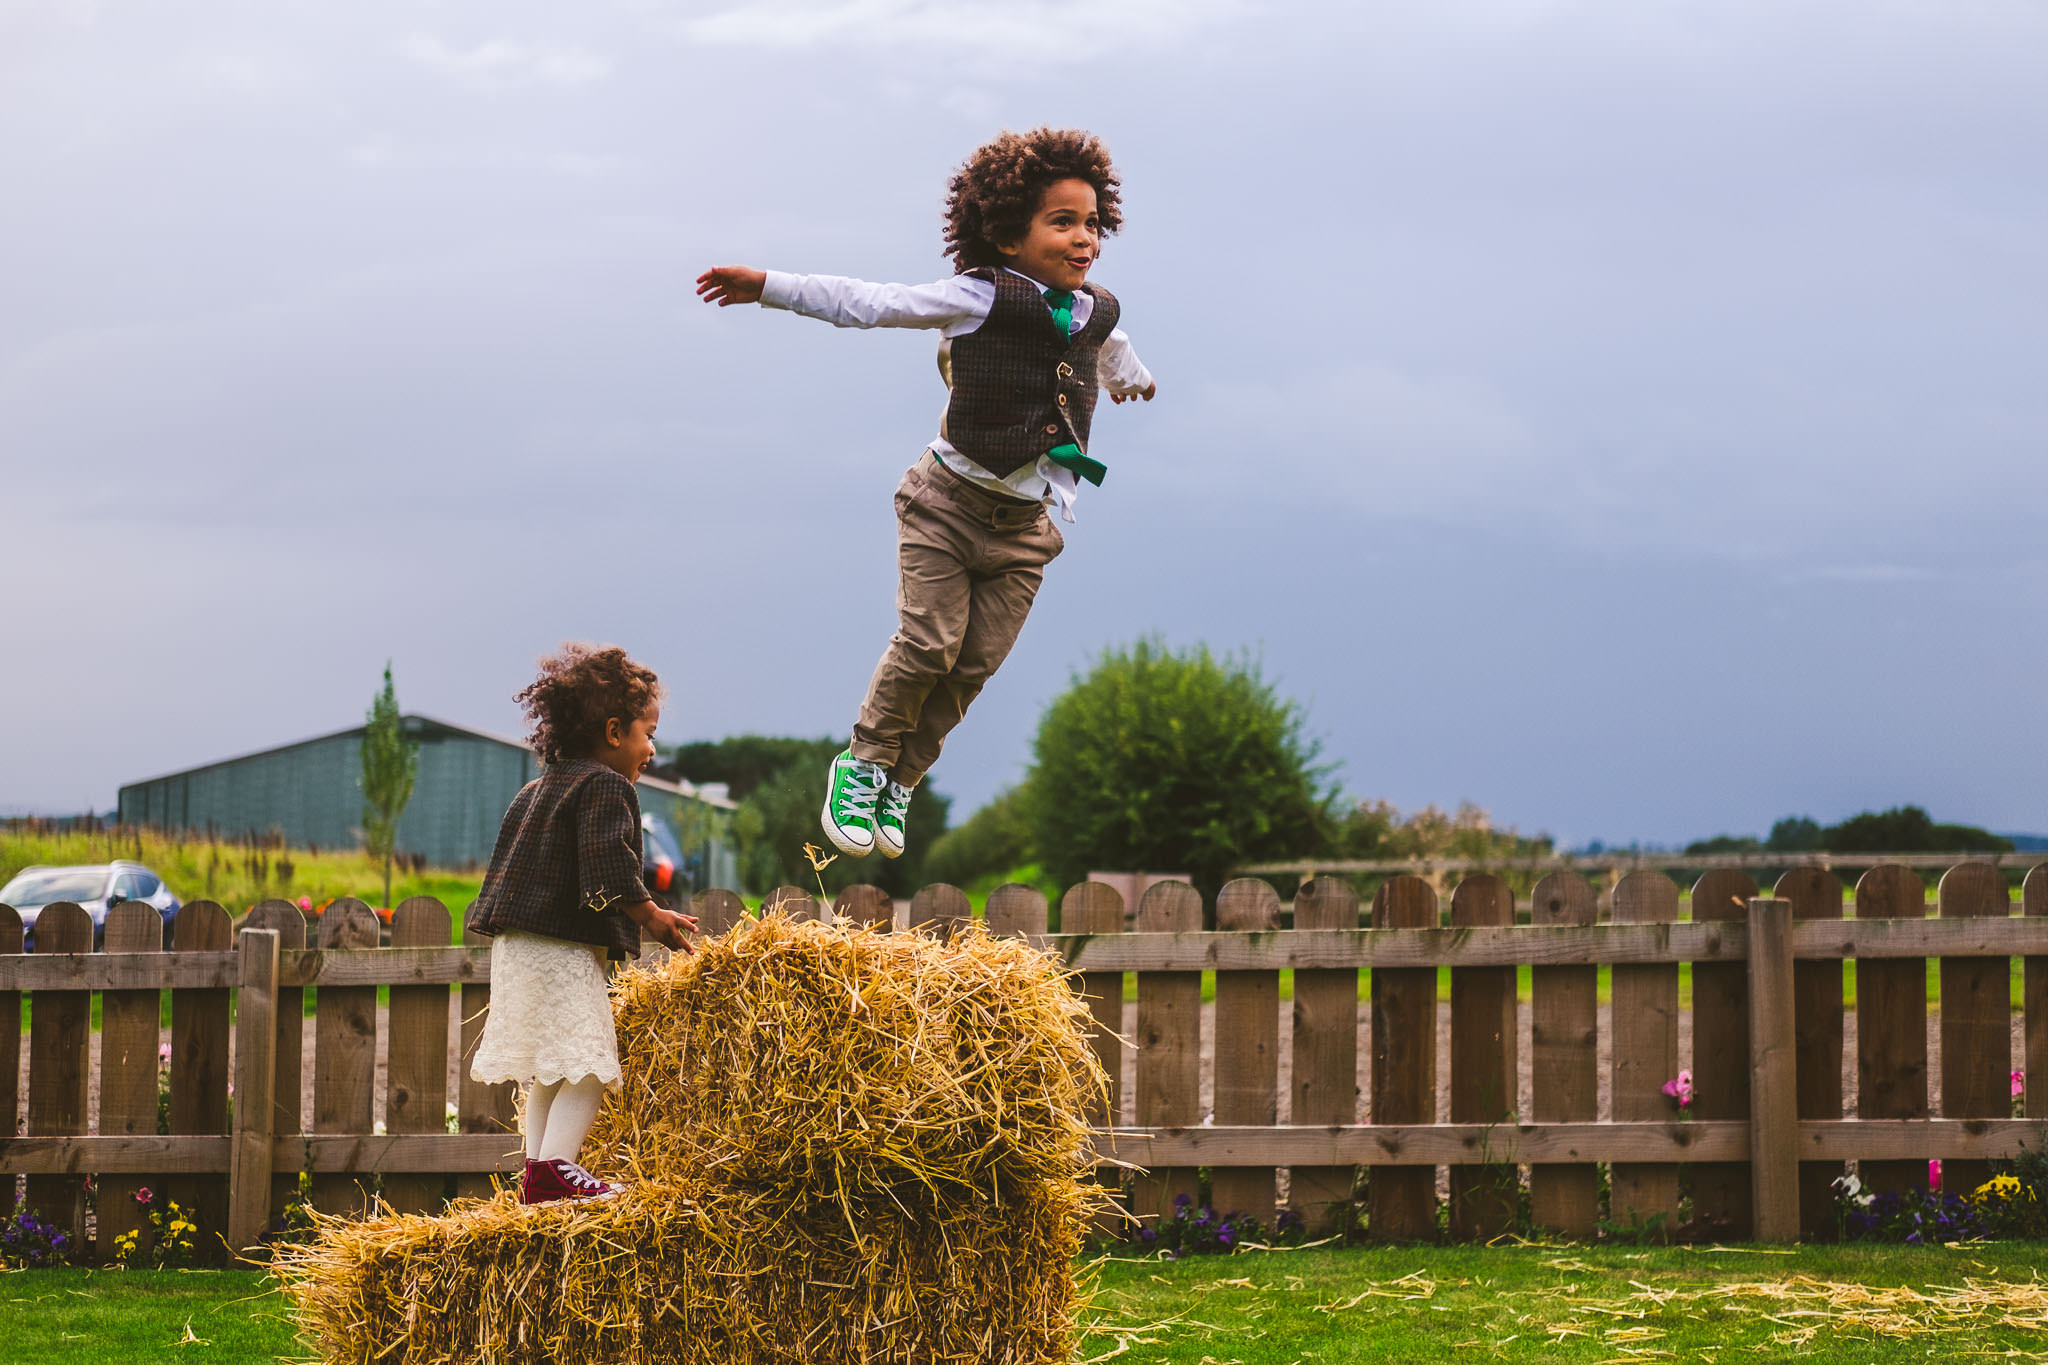 Northside Farm is an ideal wedding venue for children as they can run wild outside safely